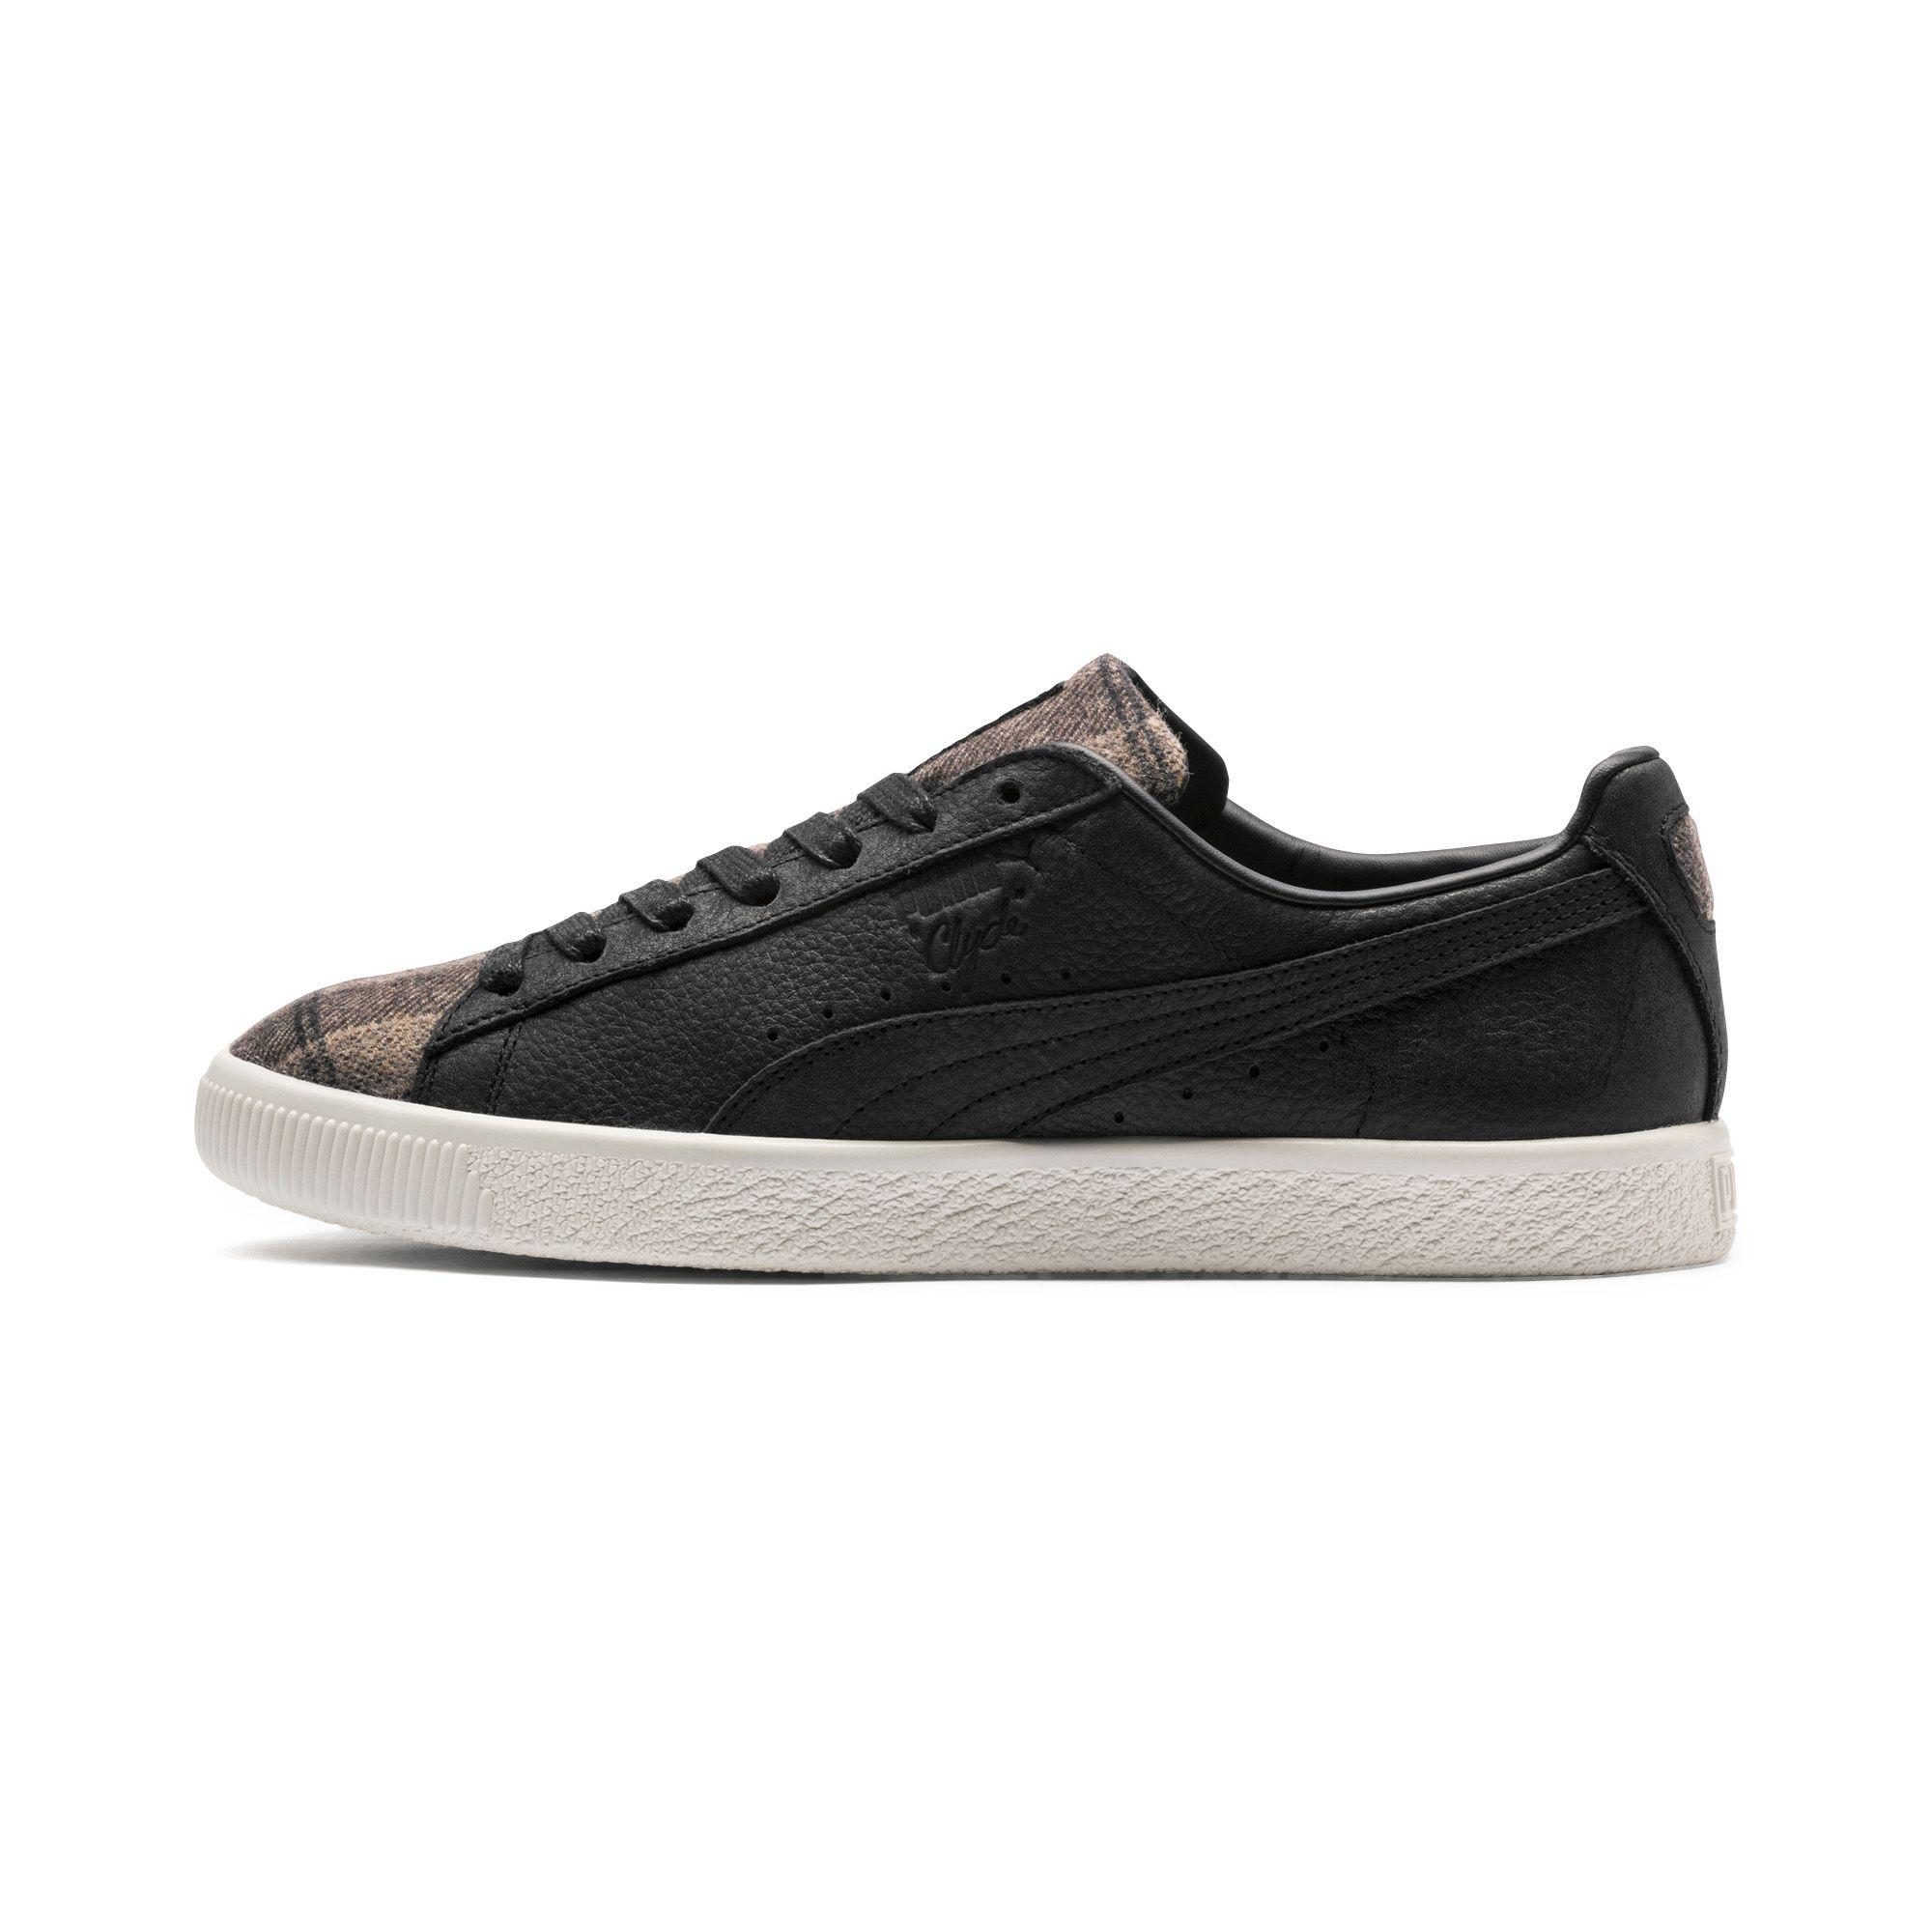 Puma Womens Clyde Plaid Suede Low Top Lace Up Fashion Sneakers ... 4ecc0cbb2